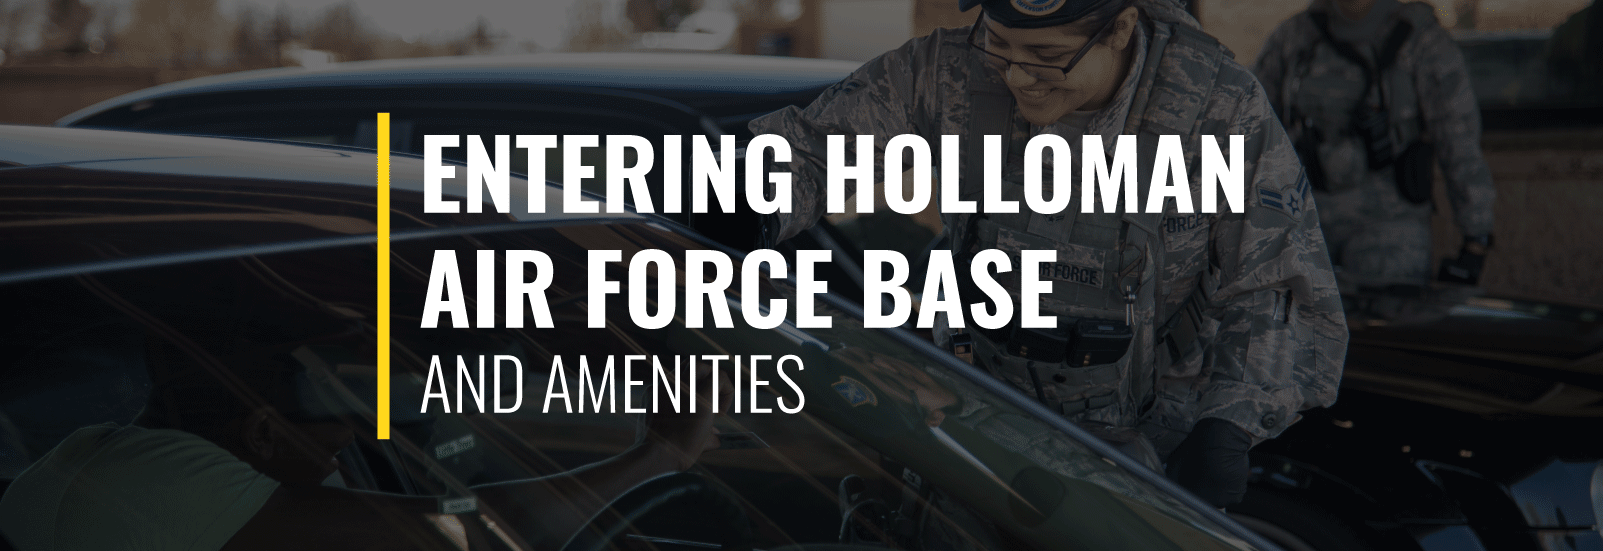 Entering Holloman Air Force Base and Amenities